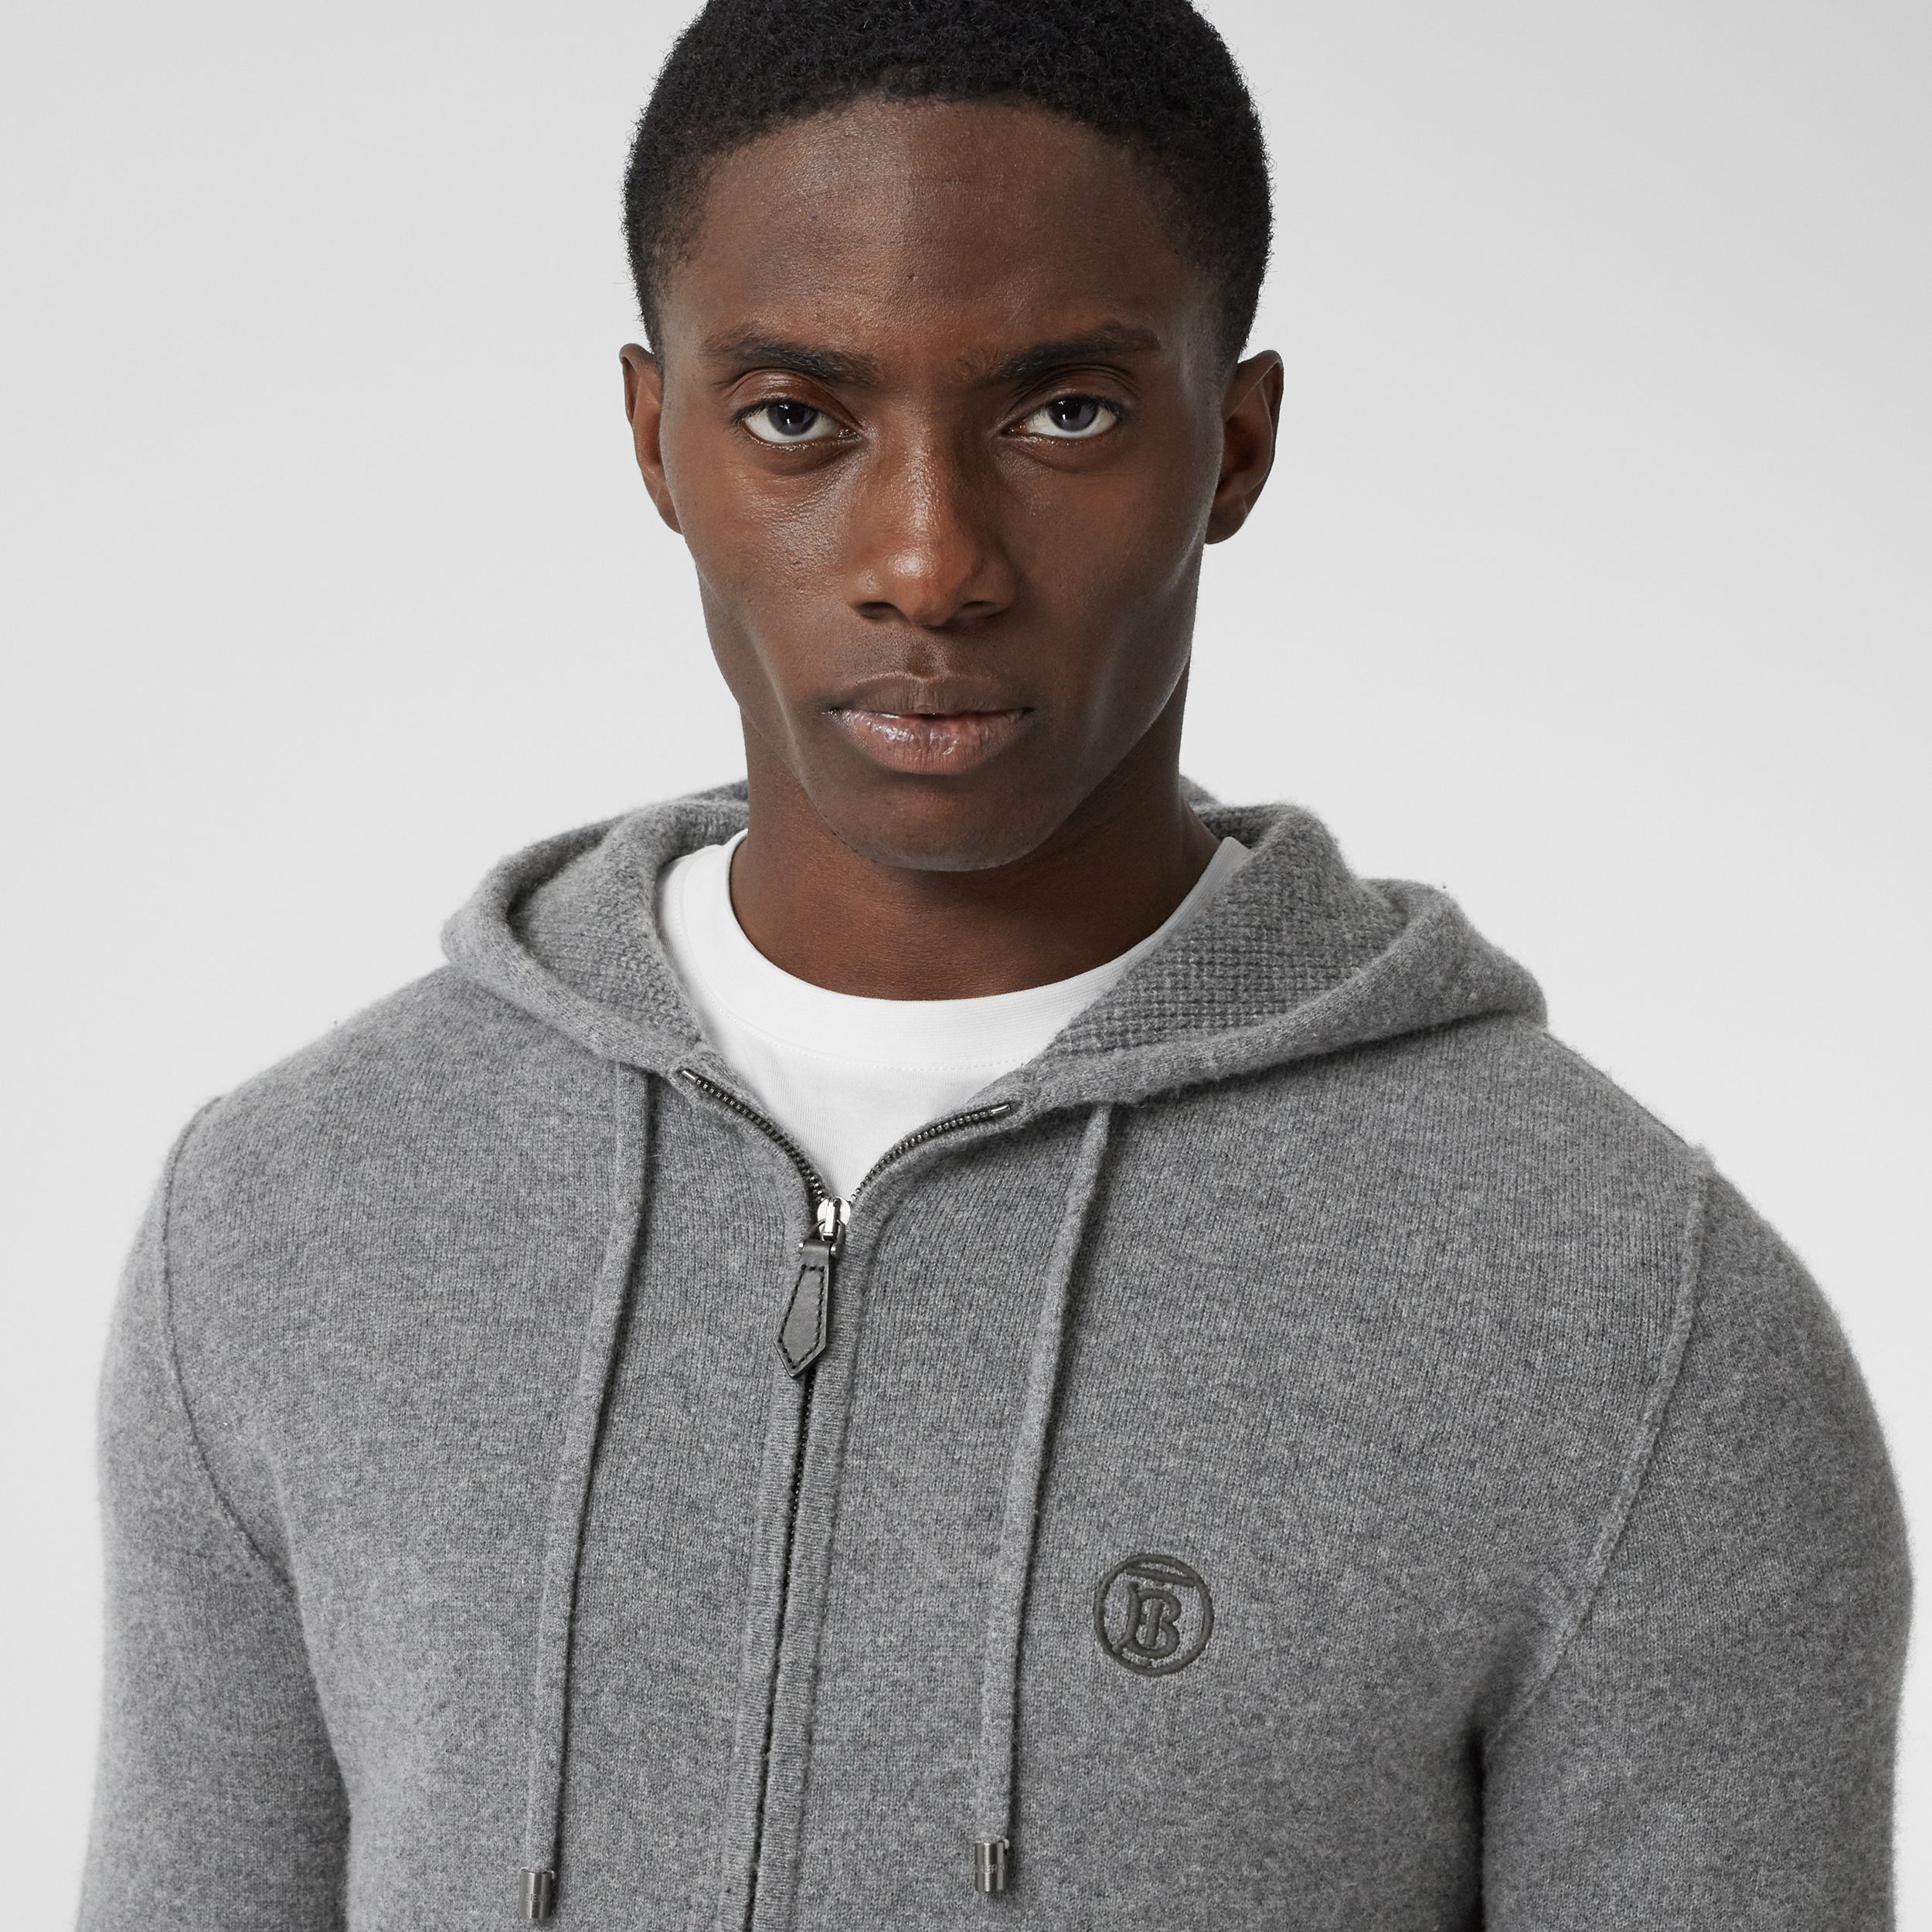 Monogram Motif Cashmere Blend Hooded Top in Mid Grey Melange - Men | Burberry - 2